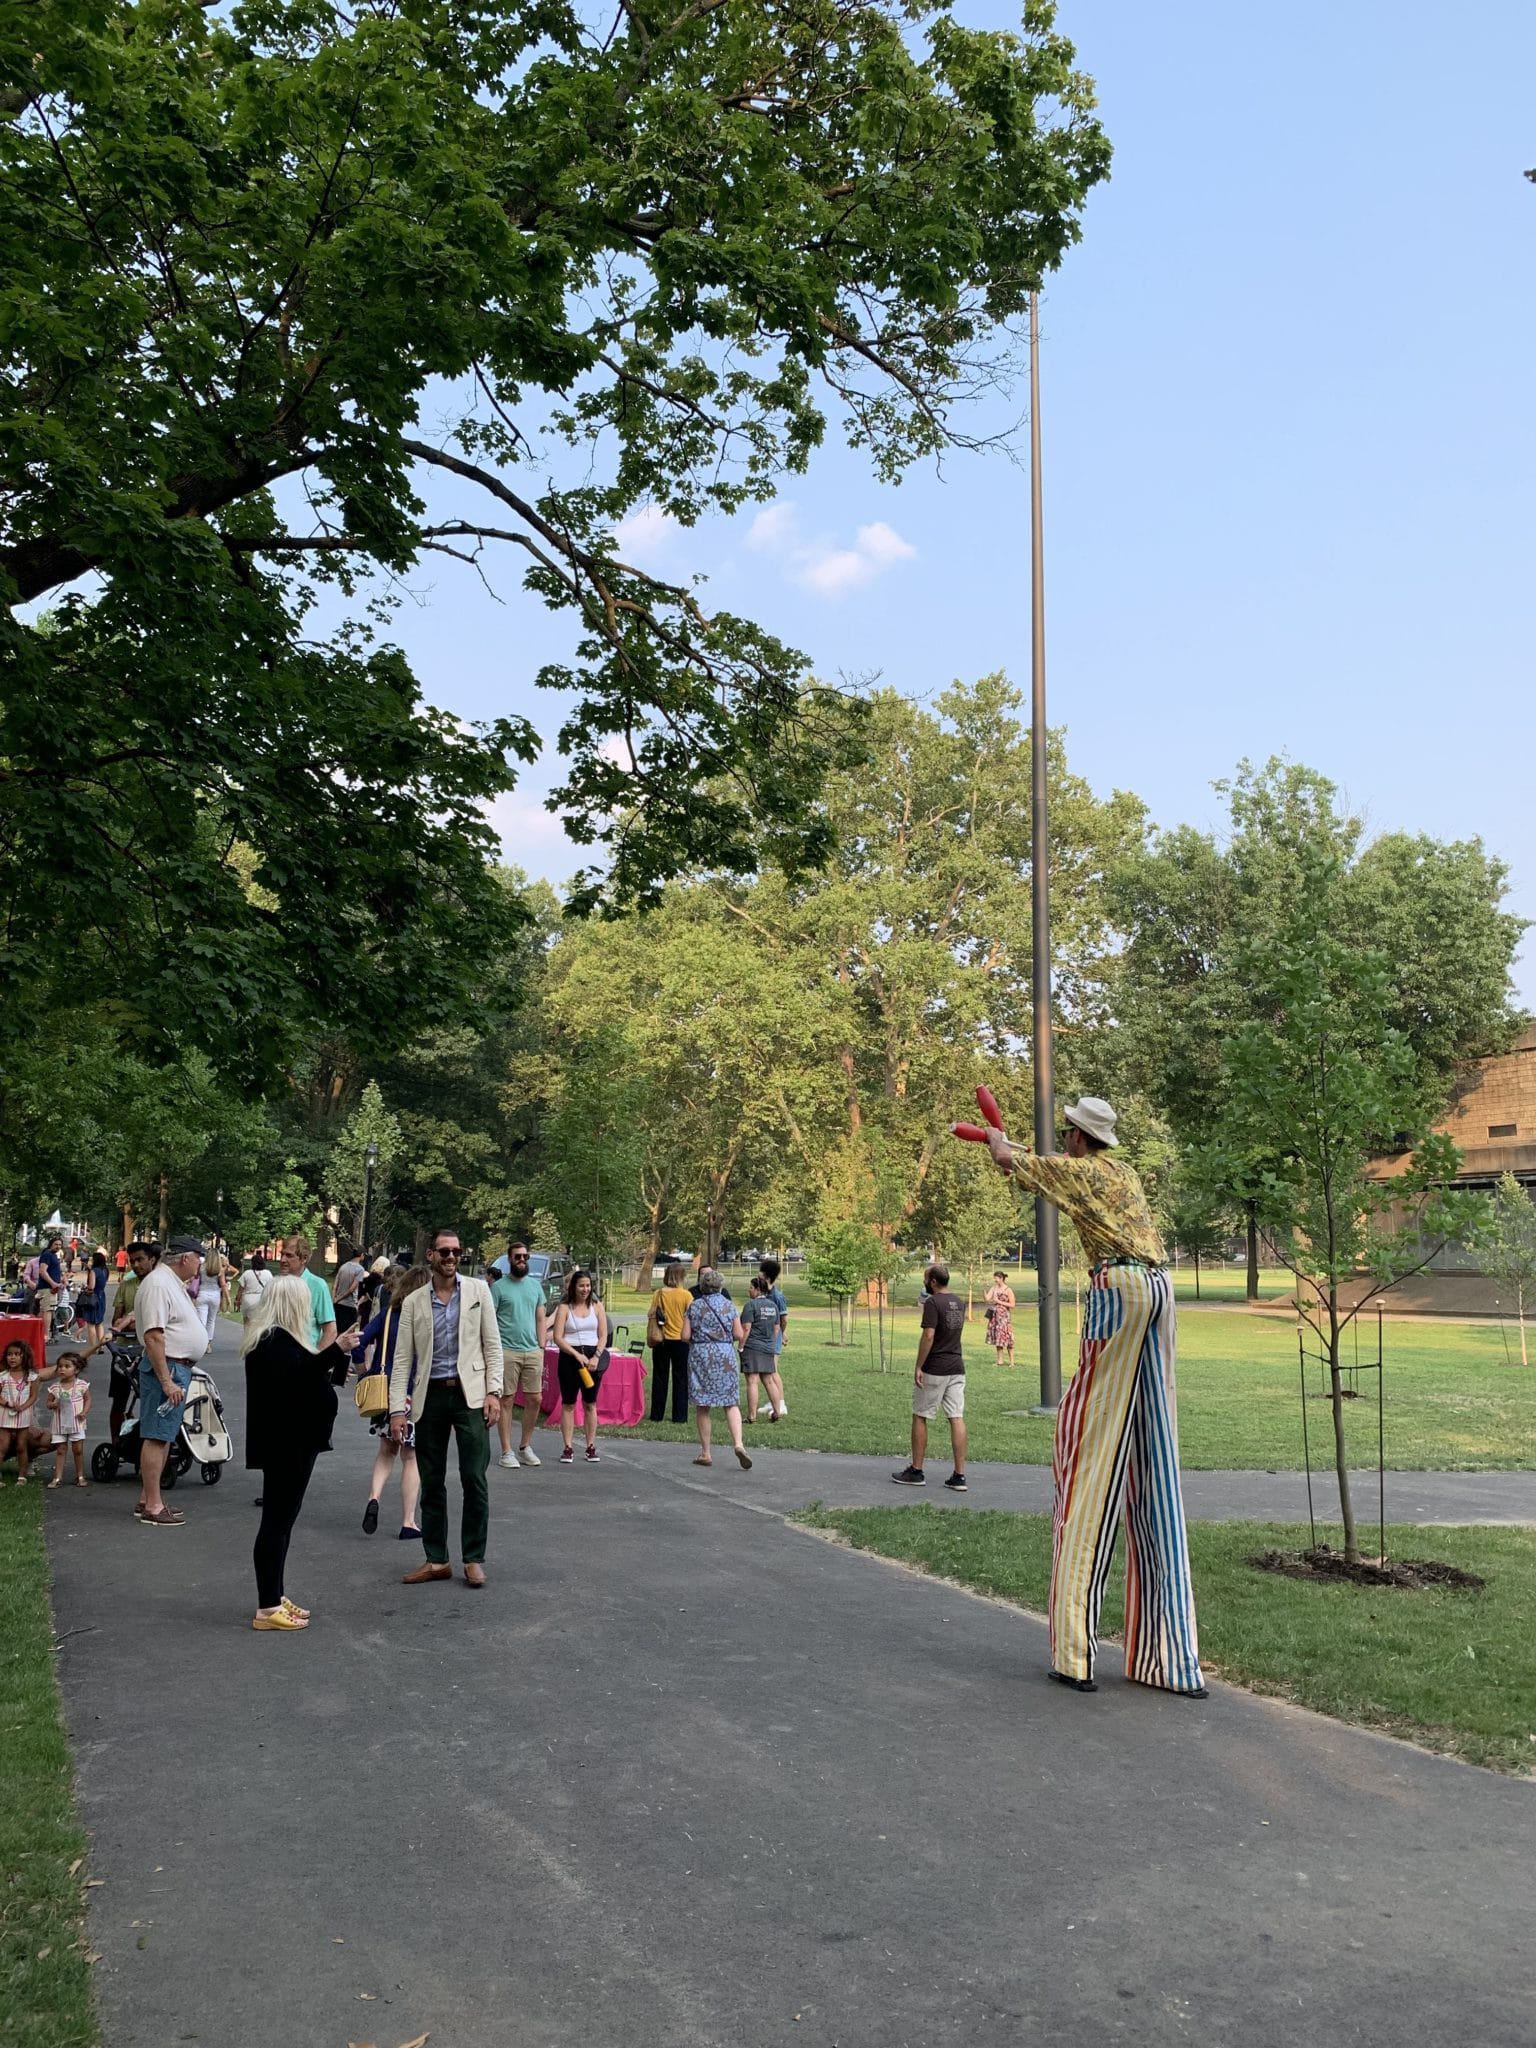 People enjoying a celebration in Allegheny Commons Park.